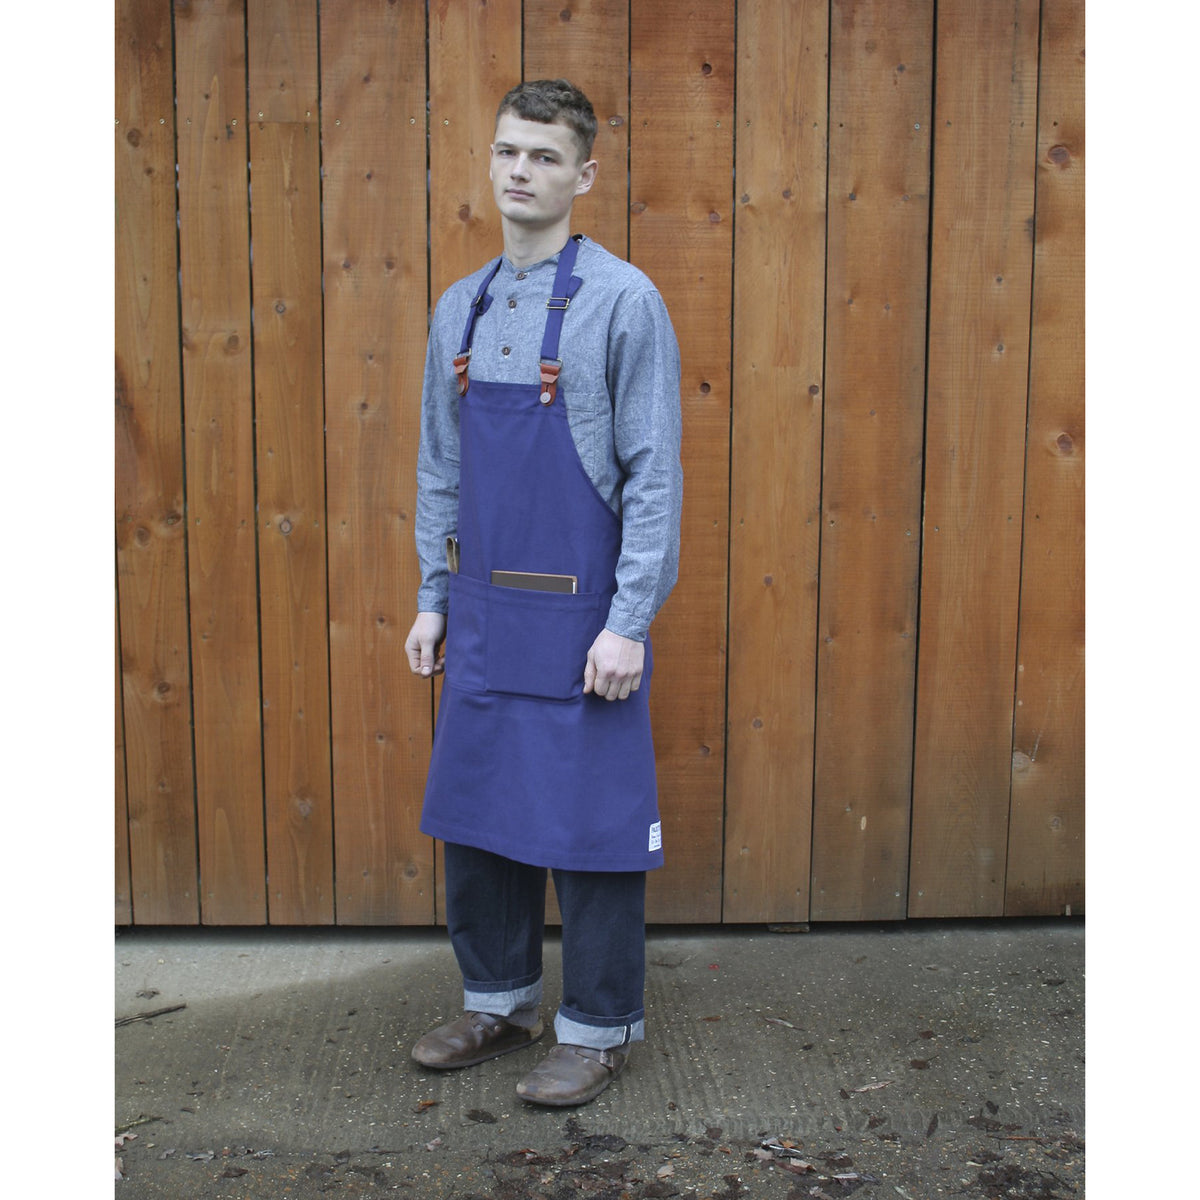 indigo apron worn by a young man